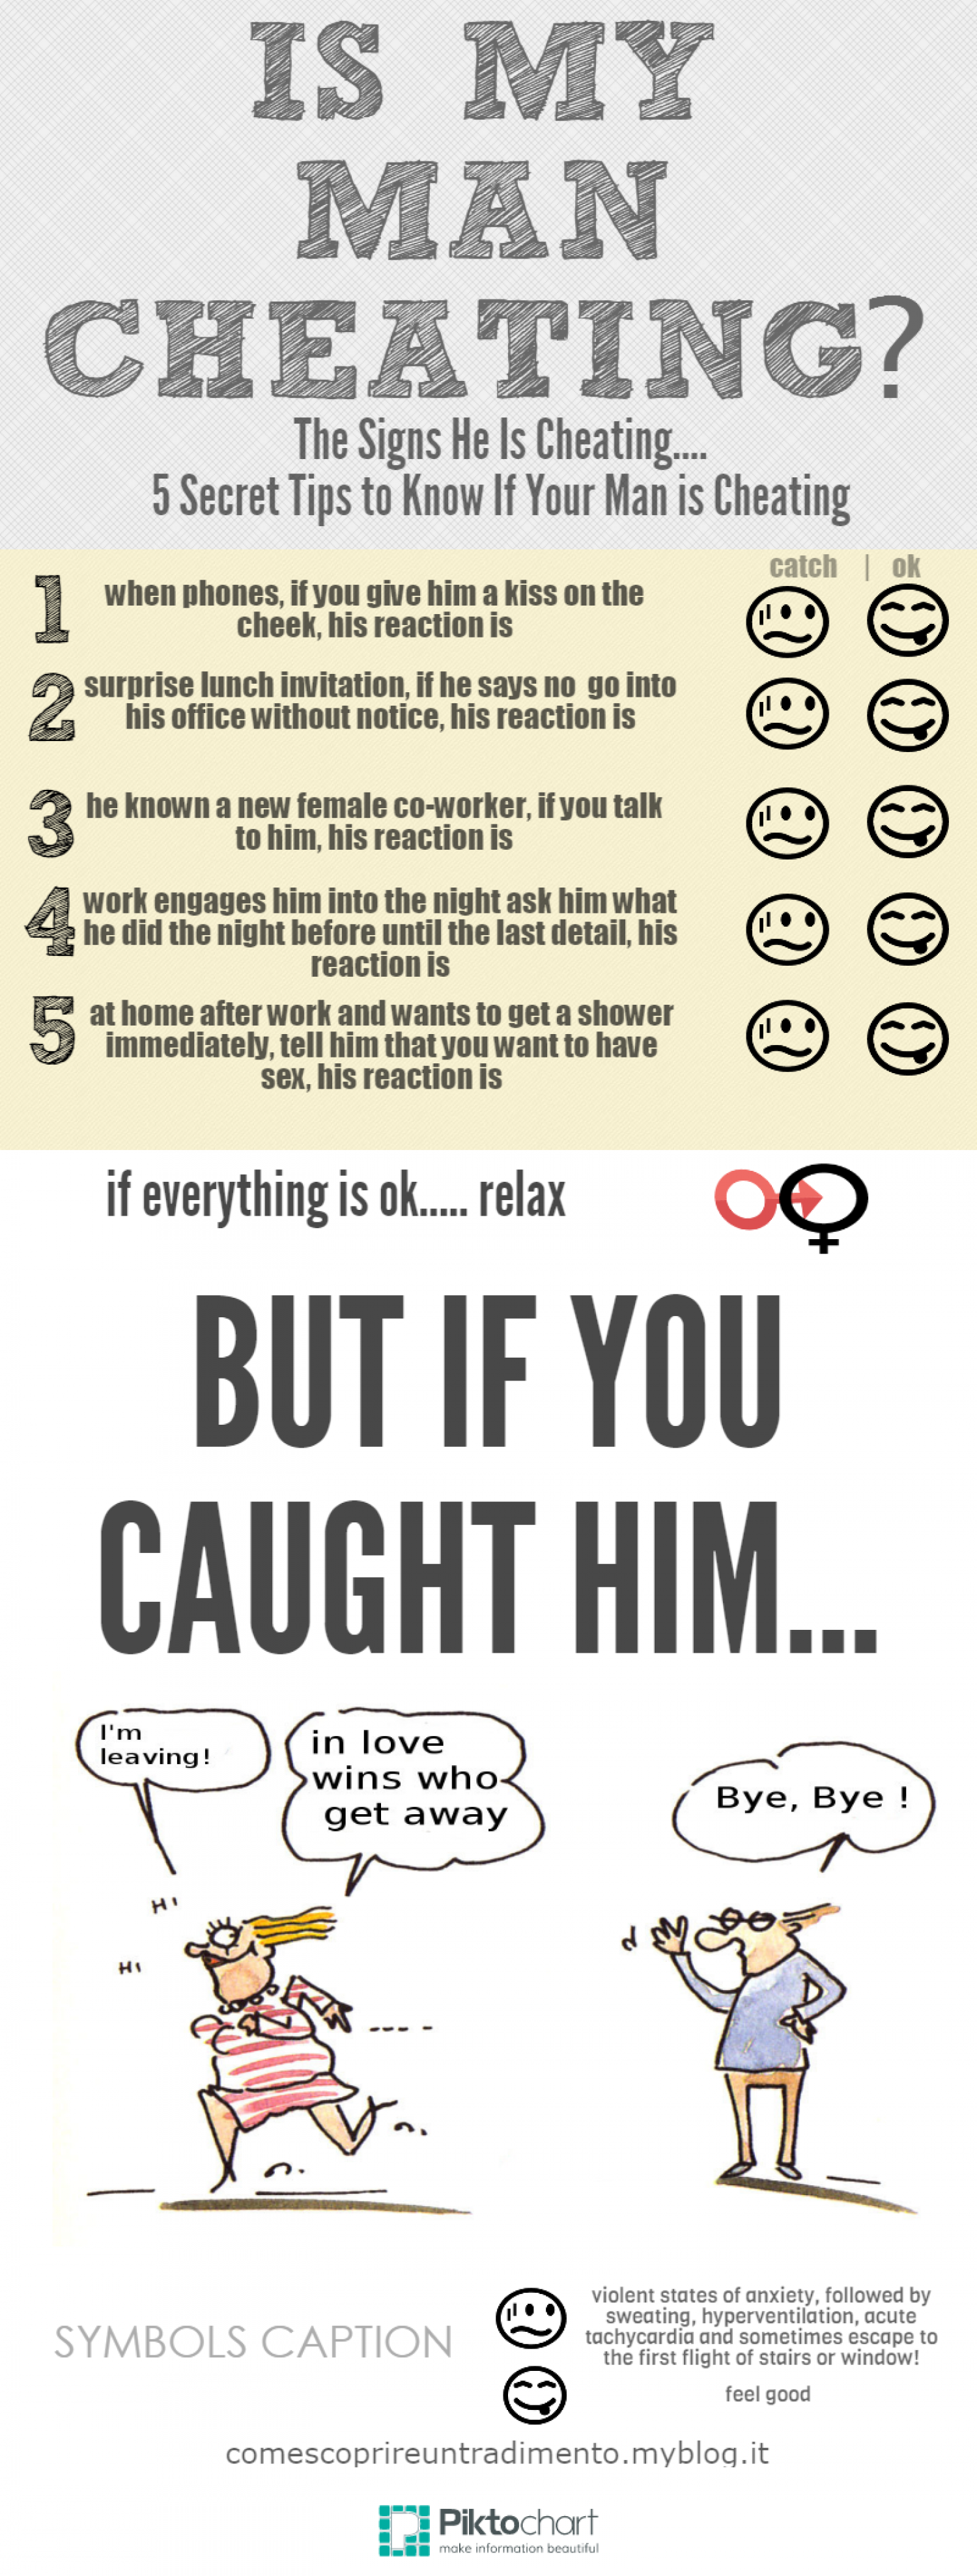 How to find out if ur man is cheating